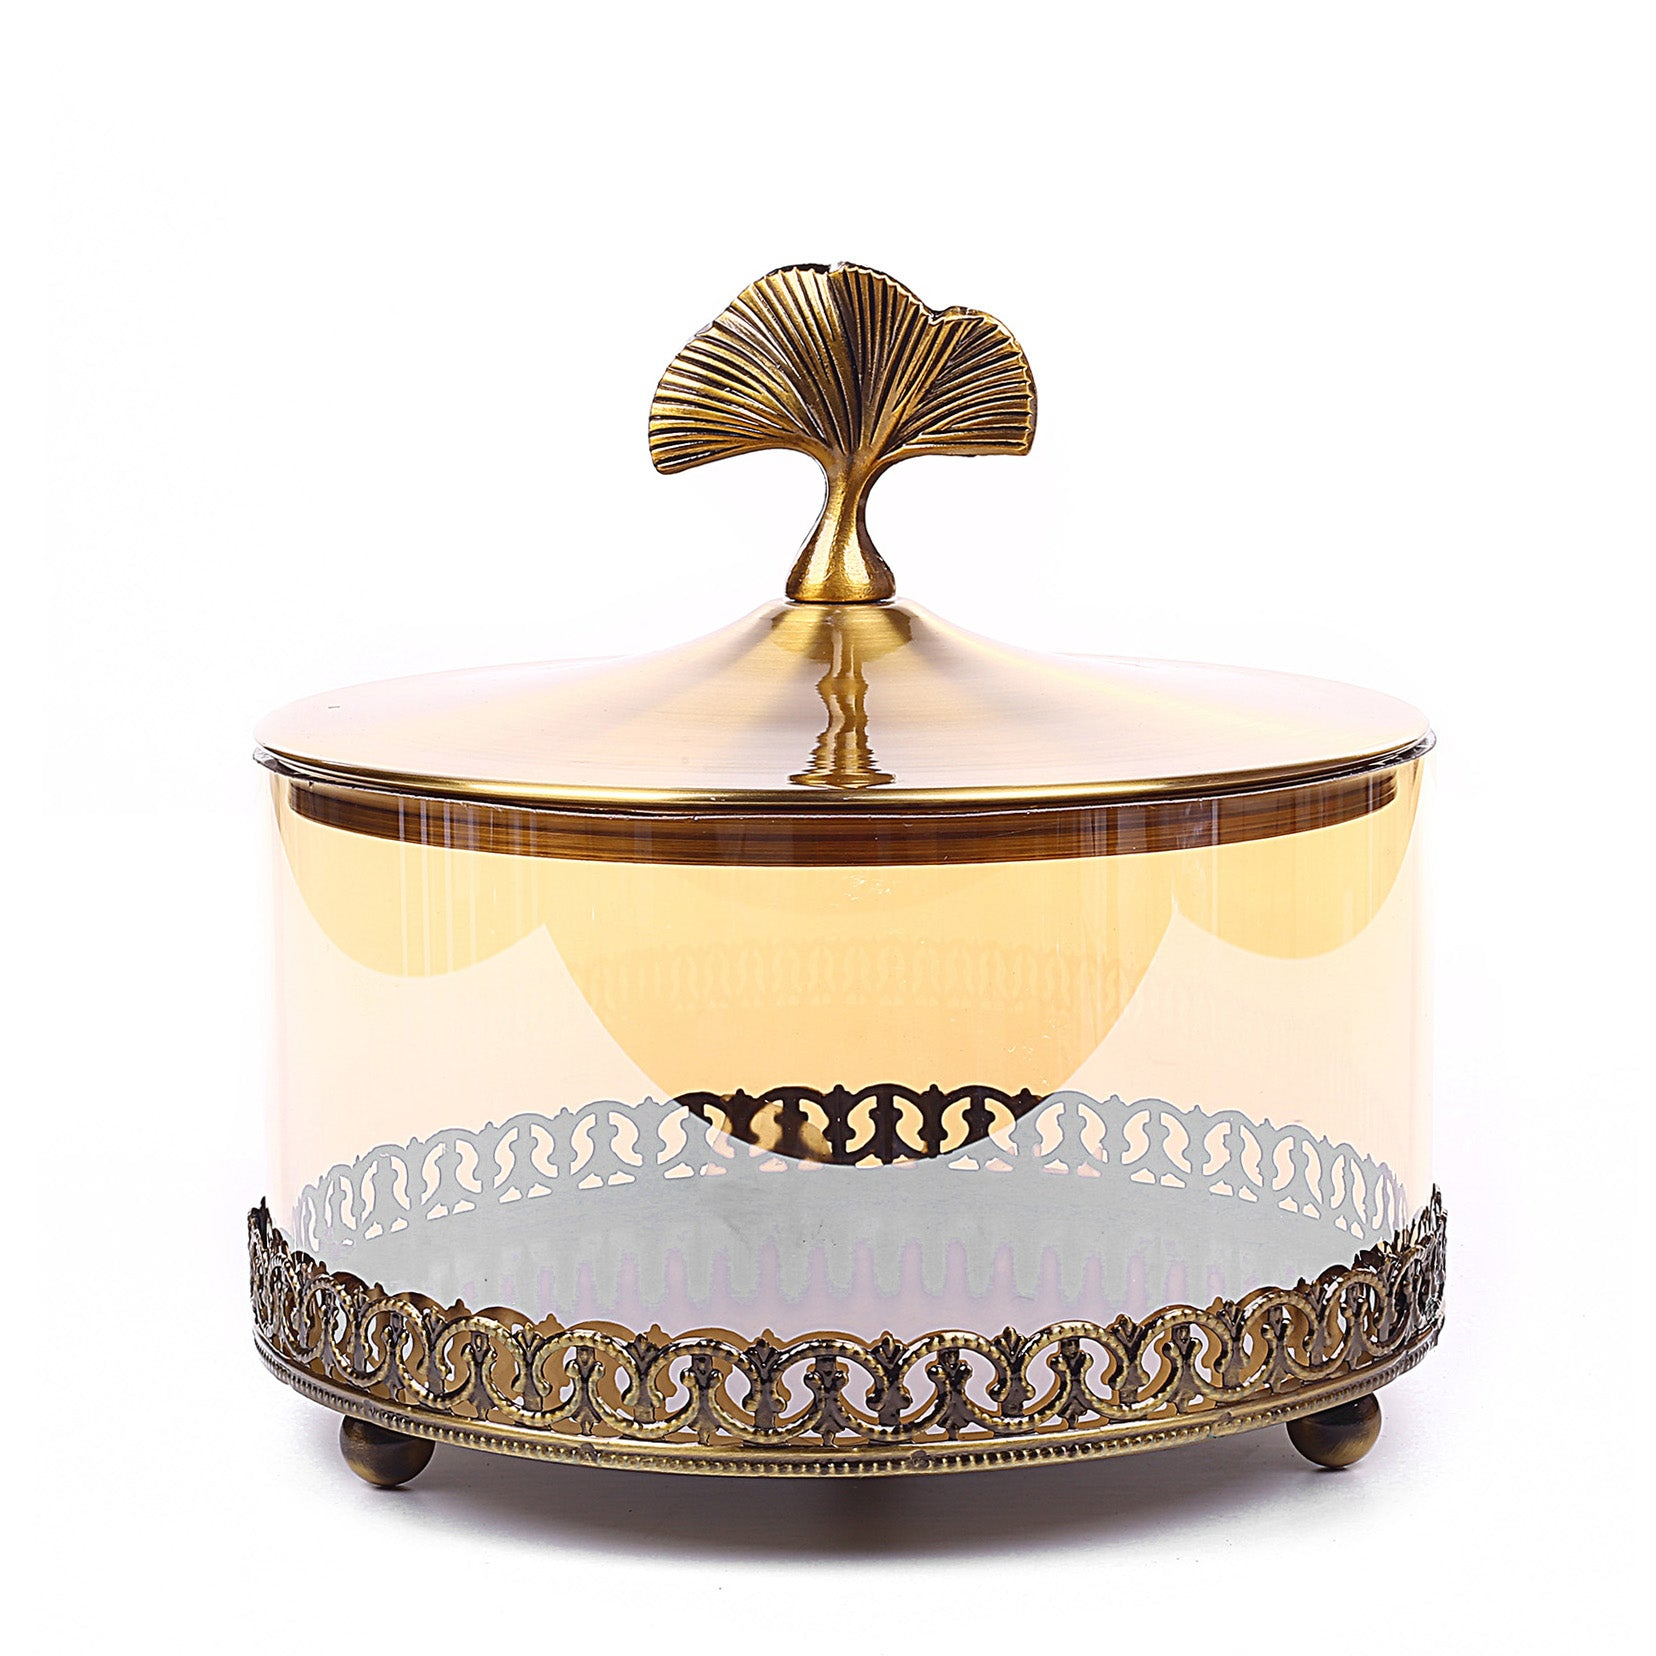 Golden Design Cake Stand & Candy Holder